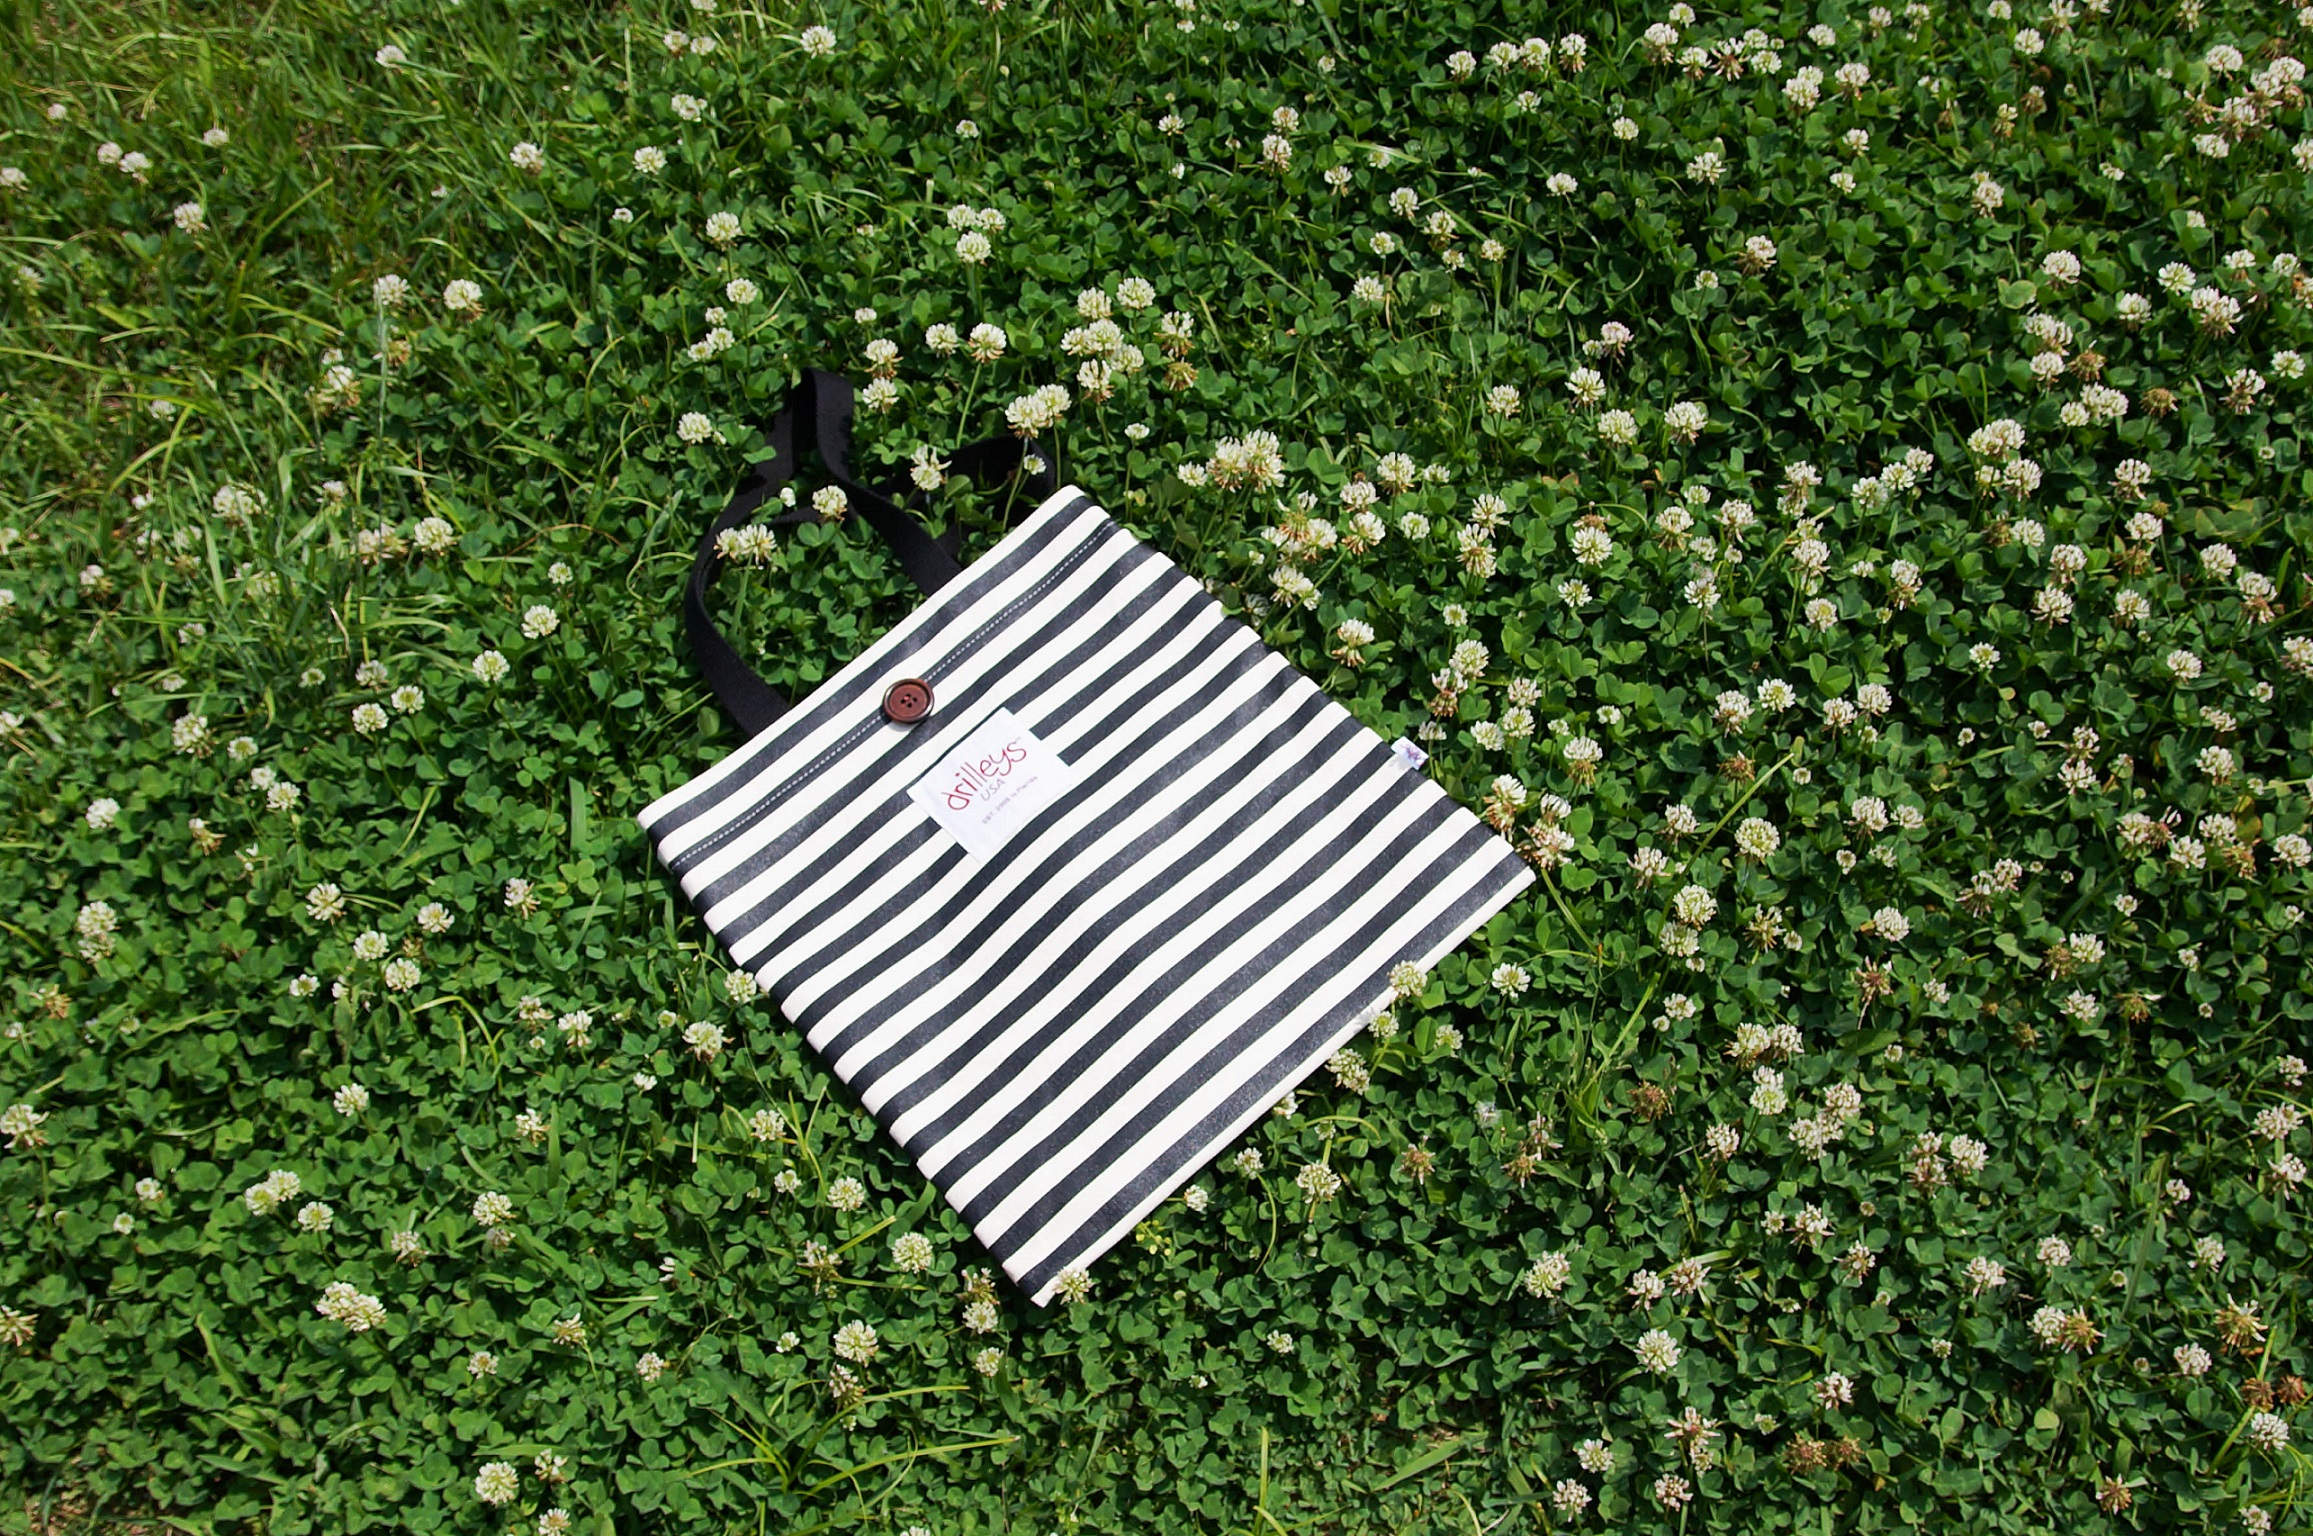 Spring Tote Bags Drilleys Eco Canvas D Editor The acm learning center offers acm members access to lifelong learning tools and resources. spring tote bags drilleys eco canvas